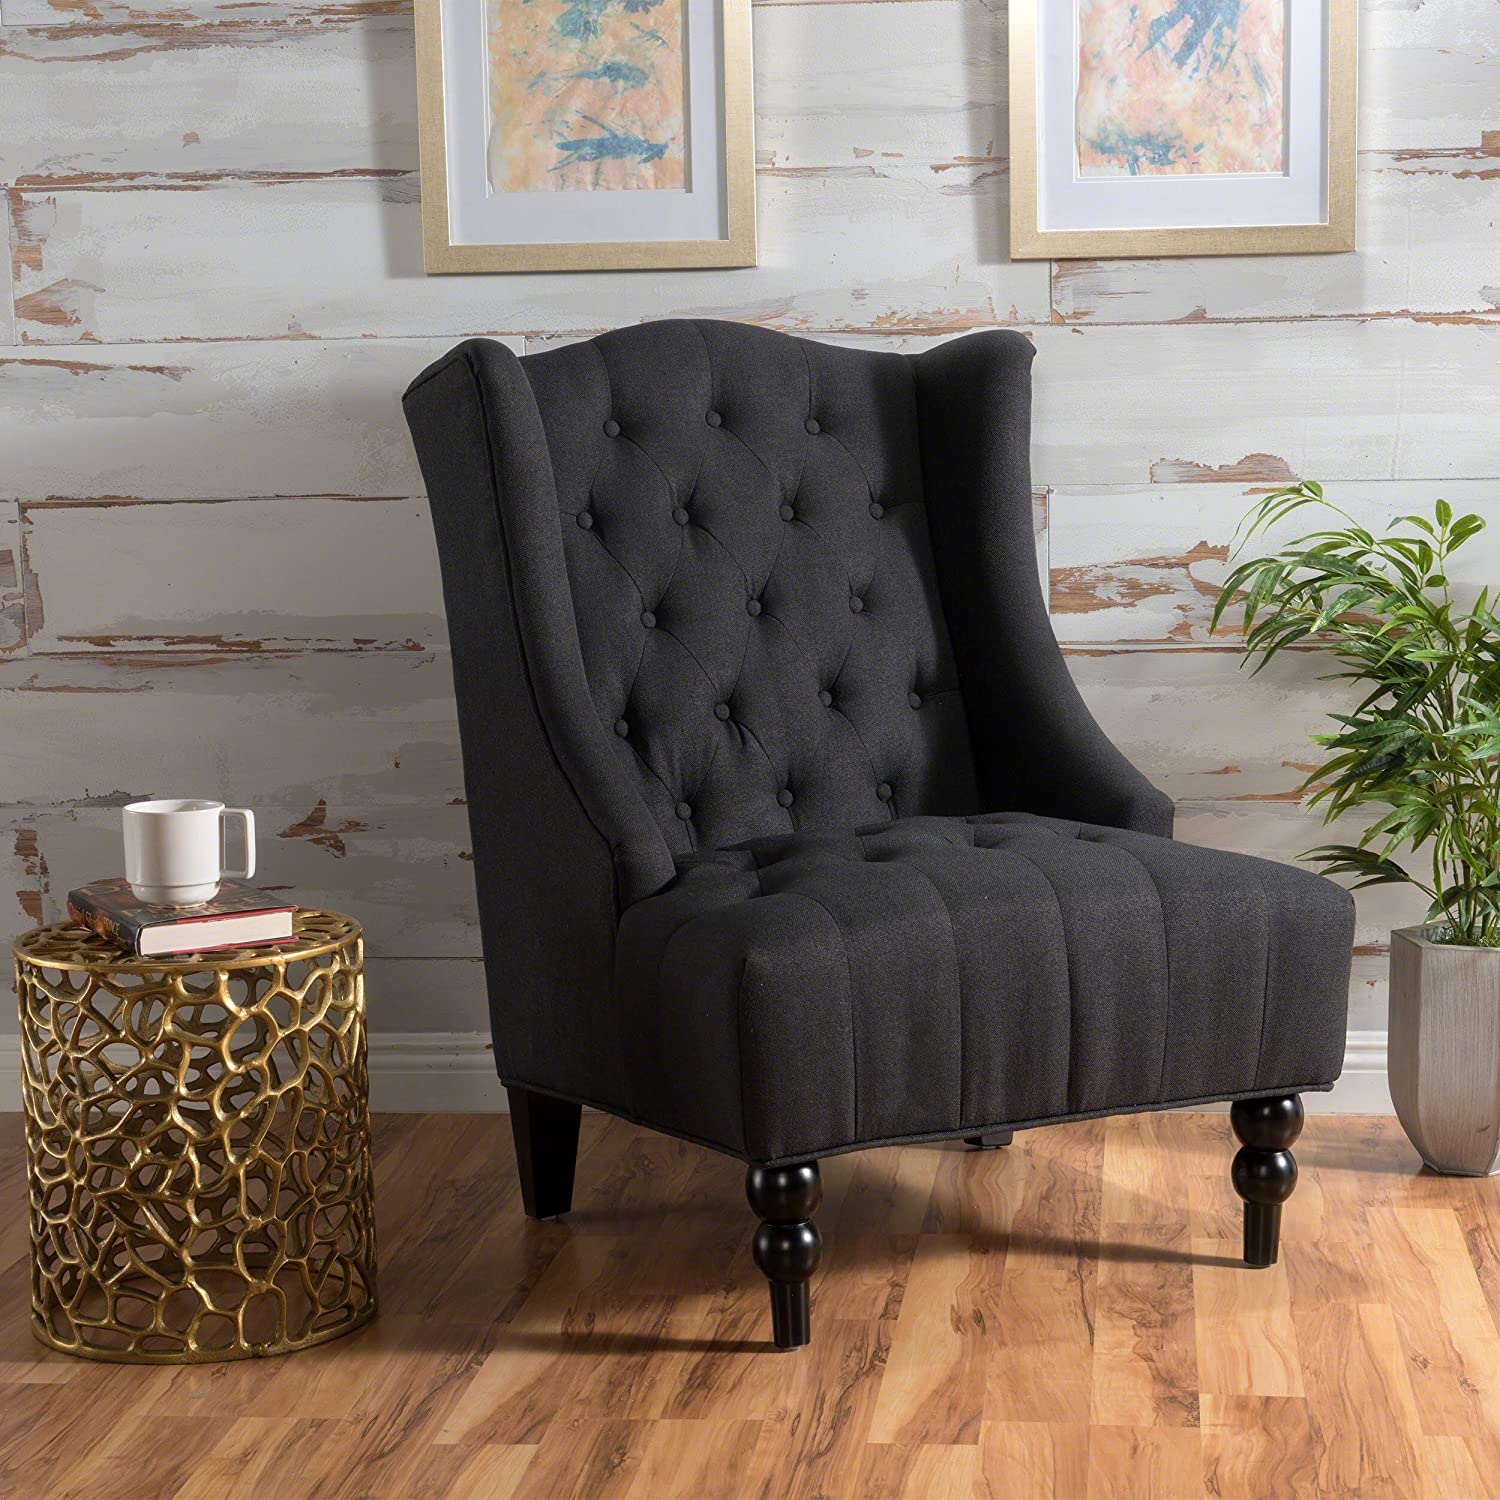 Amazon com clarice tall wingback tufted fabric accent chair vintage club seat for living room dark charcoal kitchen dining